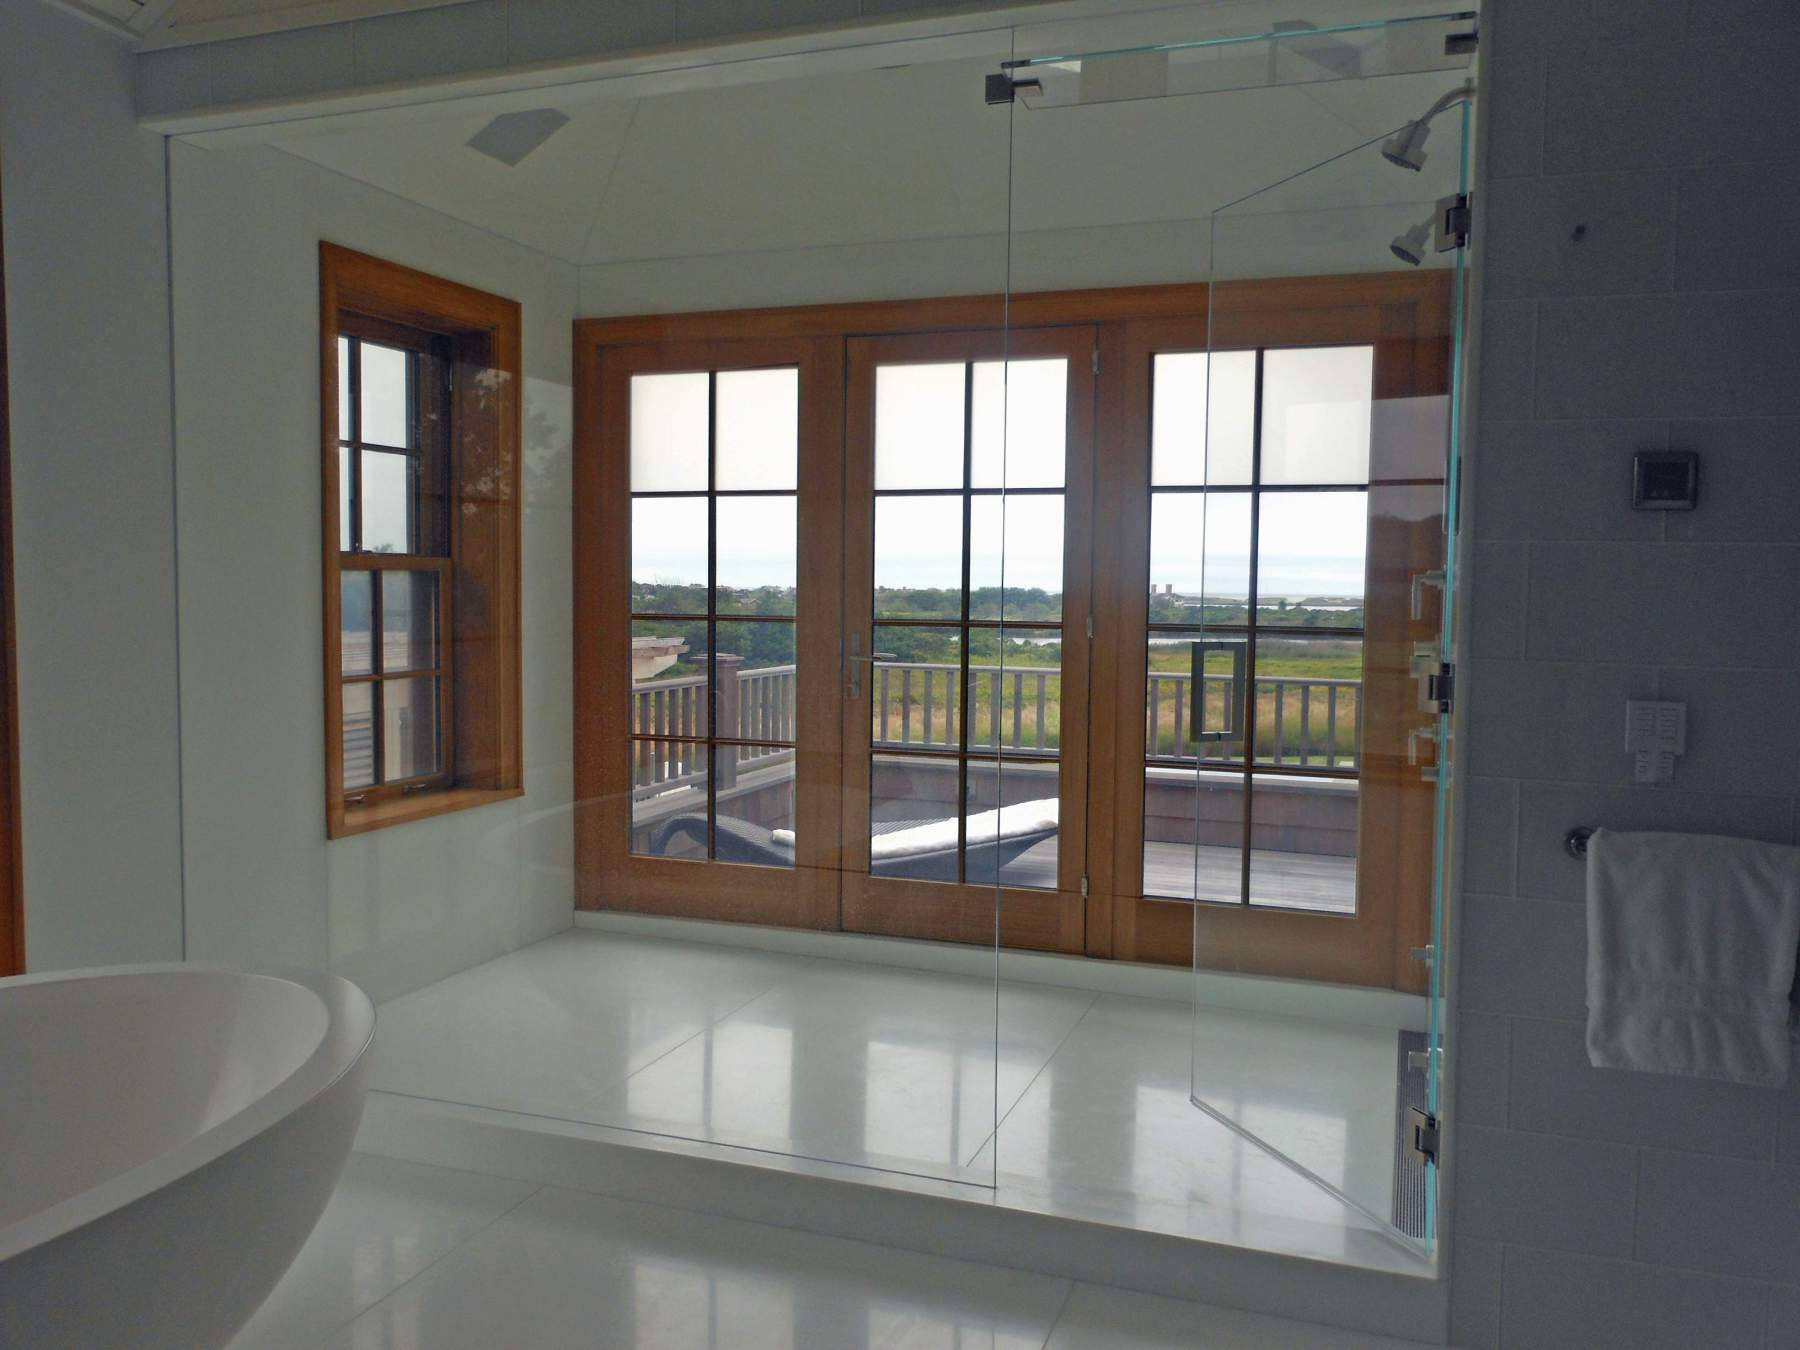 Privacy glass for bathroom windows -  5b4434 Double Glazed Privacy Glass Bathroom Clear Bathroom Windows Privacy Glass 6145 Portrait 180013506145